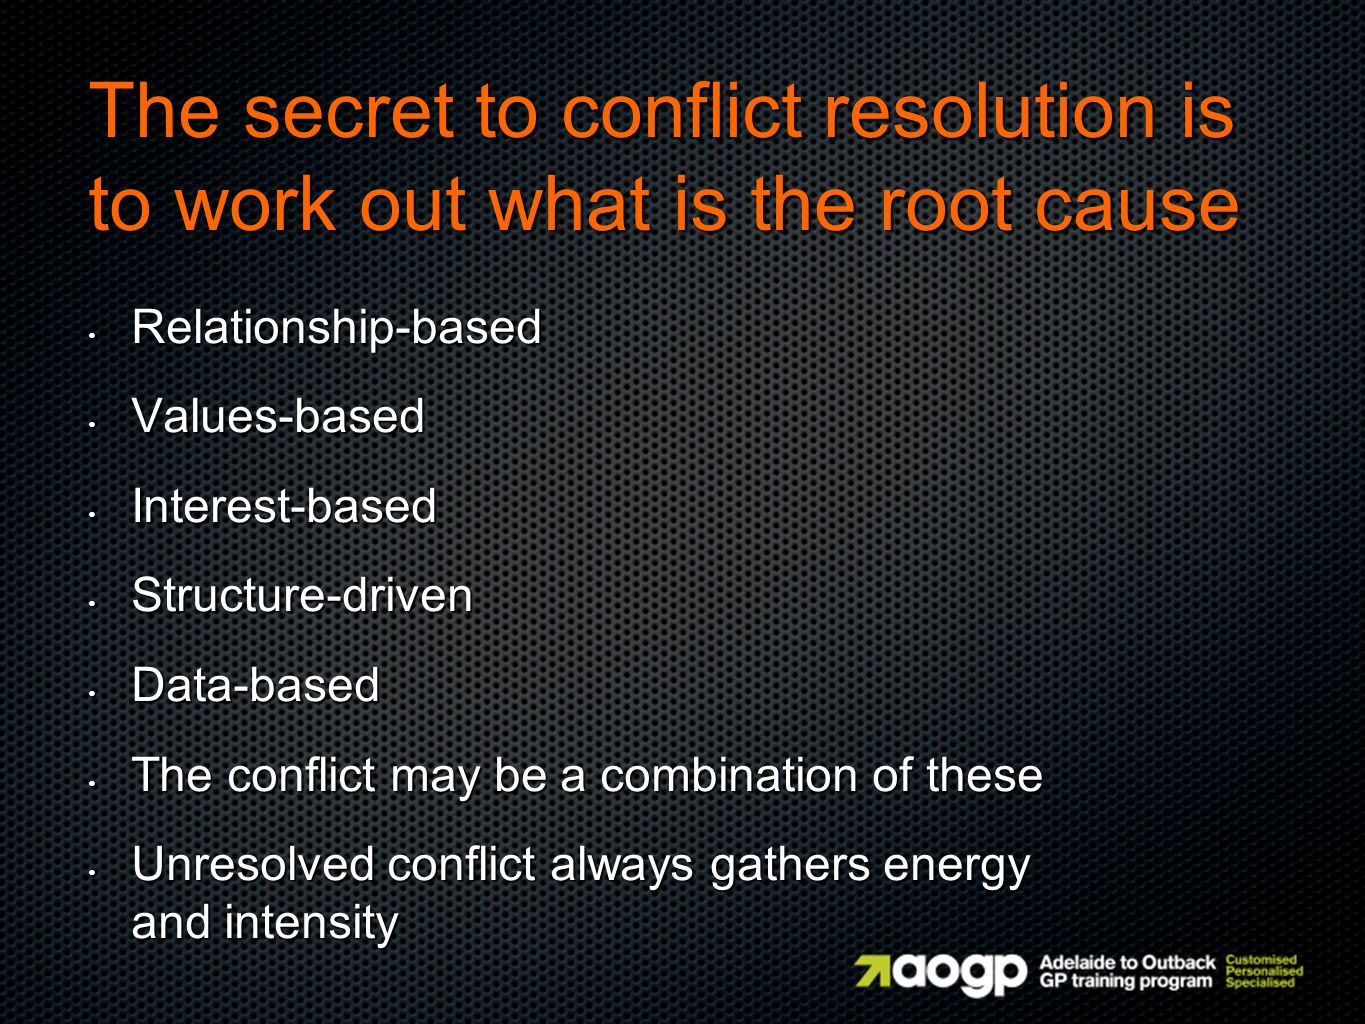 The secret to conflict resolution is to work out what is the root cause Relationship-based Relationship-based Values-based Values-based Interest-based Interest-based Structure-driven Structure-driven Data-based Data-based The conflict may be a combination of these The conflict may be a combination of these Unresolved conflict always gathers energy and intensity Unresolved conflict always gathers energy and intensity